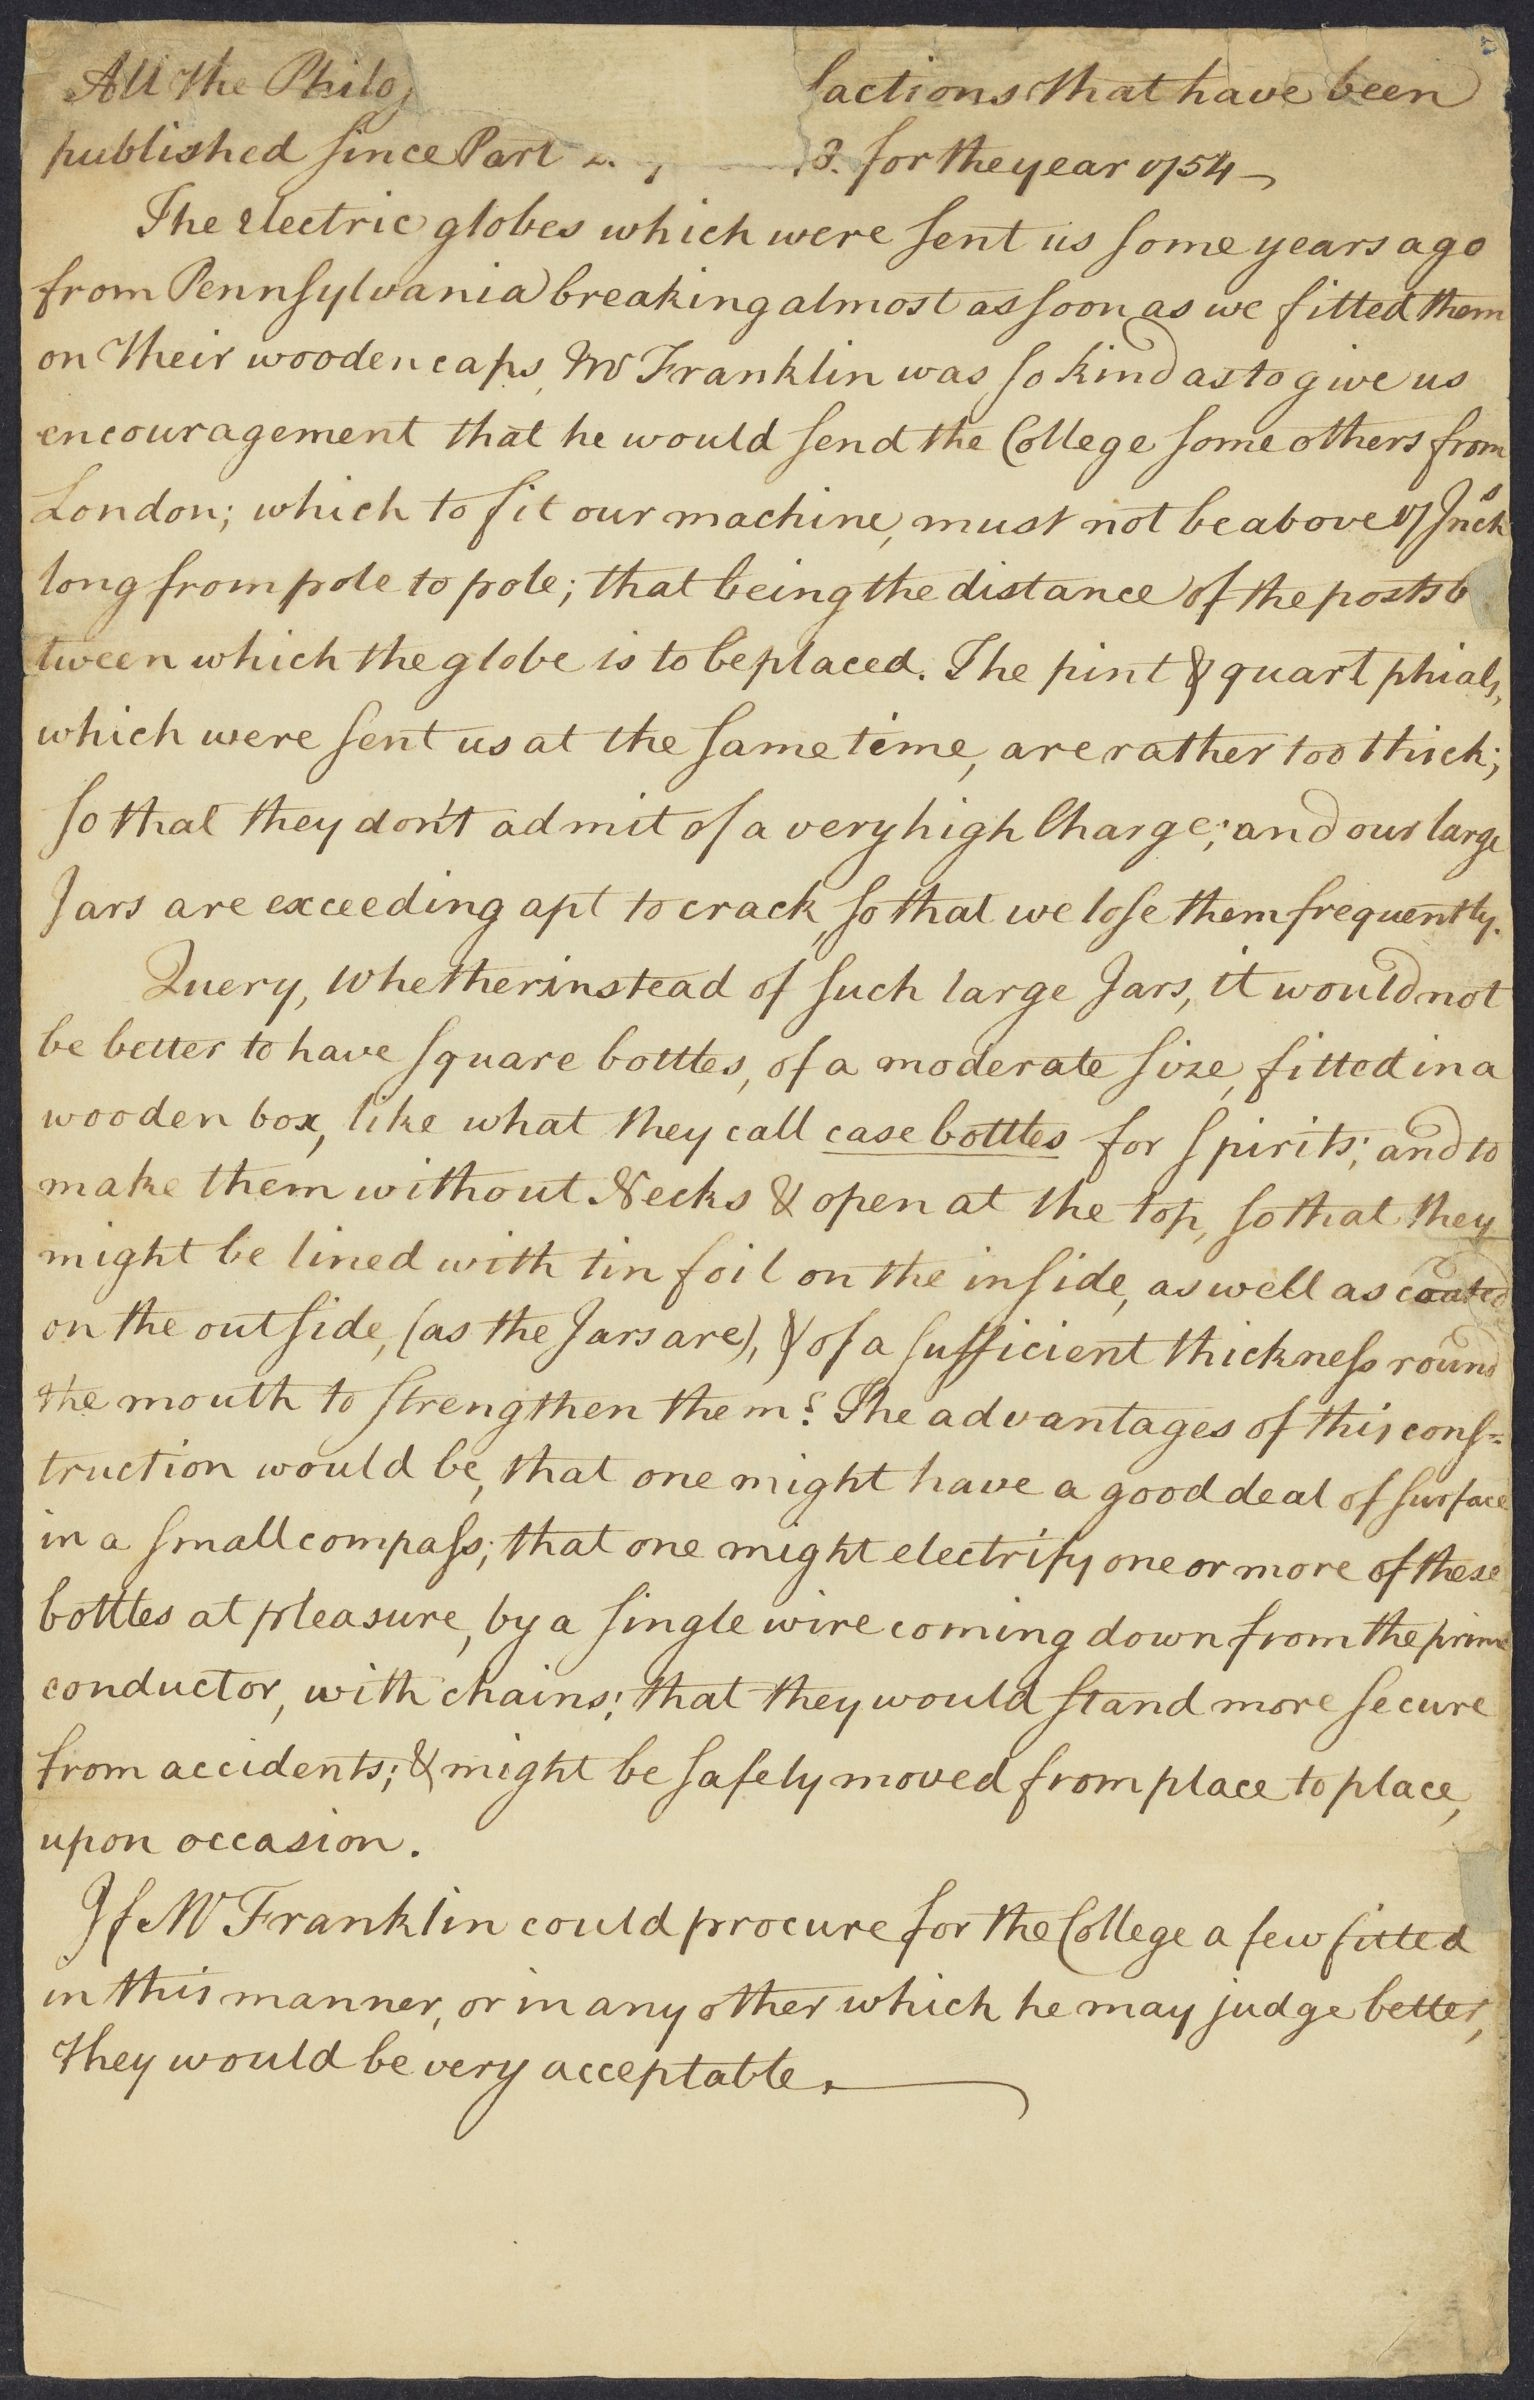 John Winthrop's proposal respecting electrical globes and jars, ca. 1758